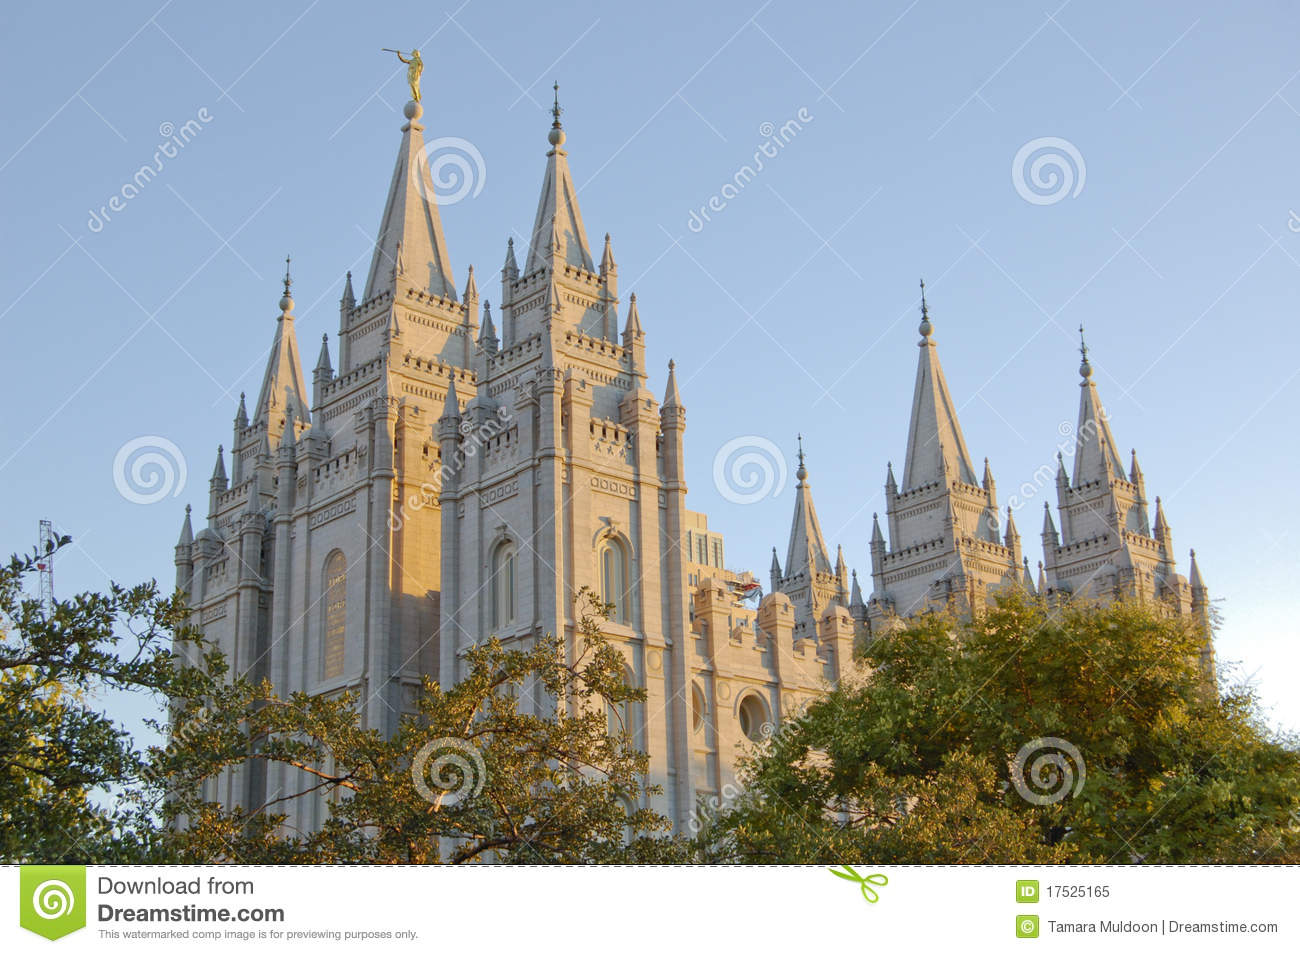 Salt Lake LDS Temple Clip Art http://hawaiidermatology.com/lds/lds-clip-art-salt-lake-city-temple.htm